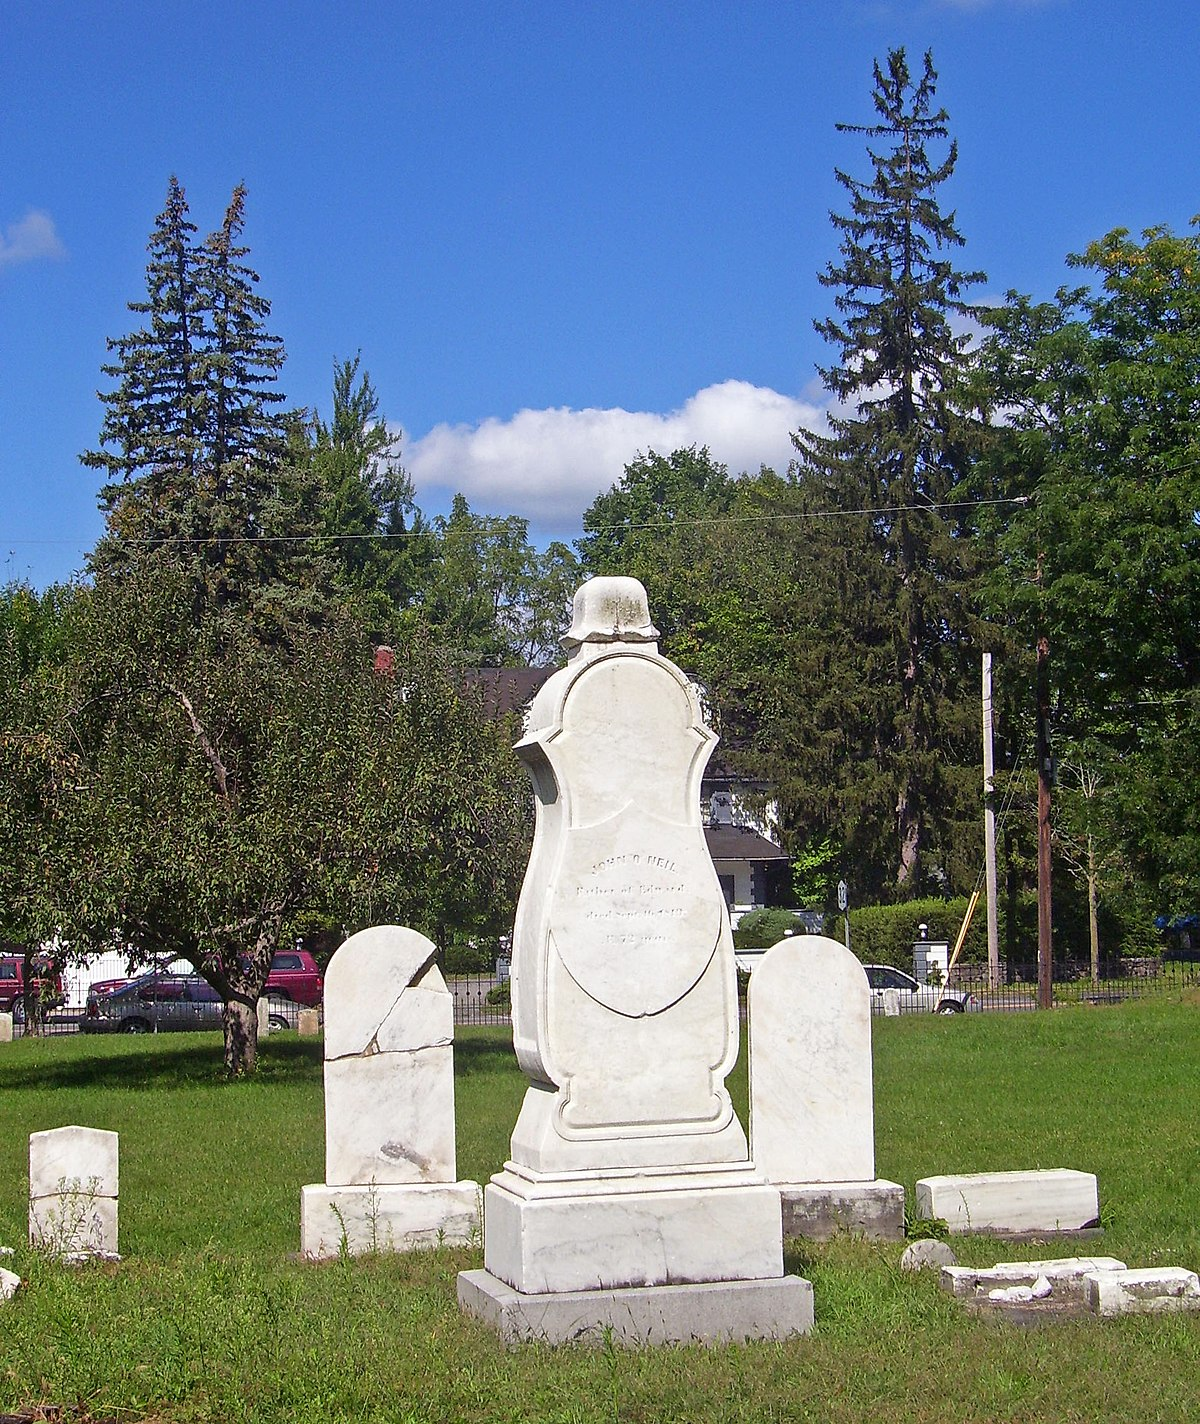 Burial ground: a selection of sites